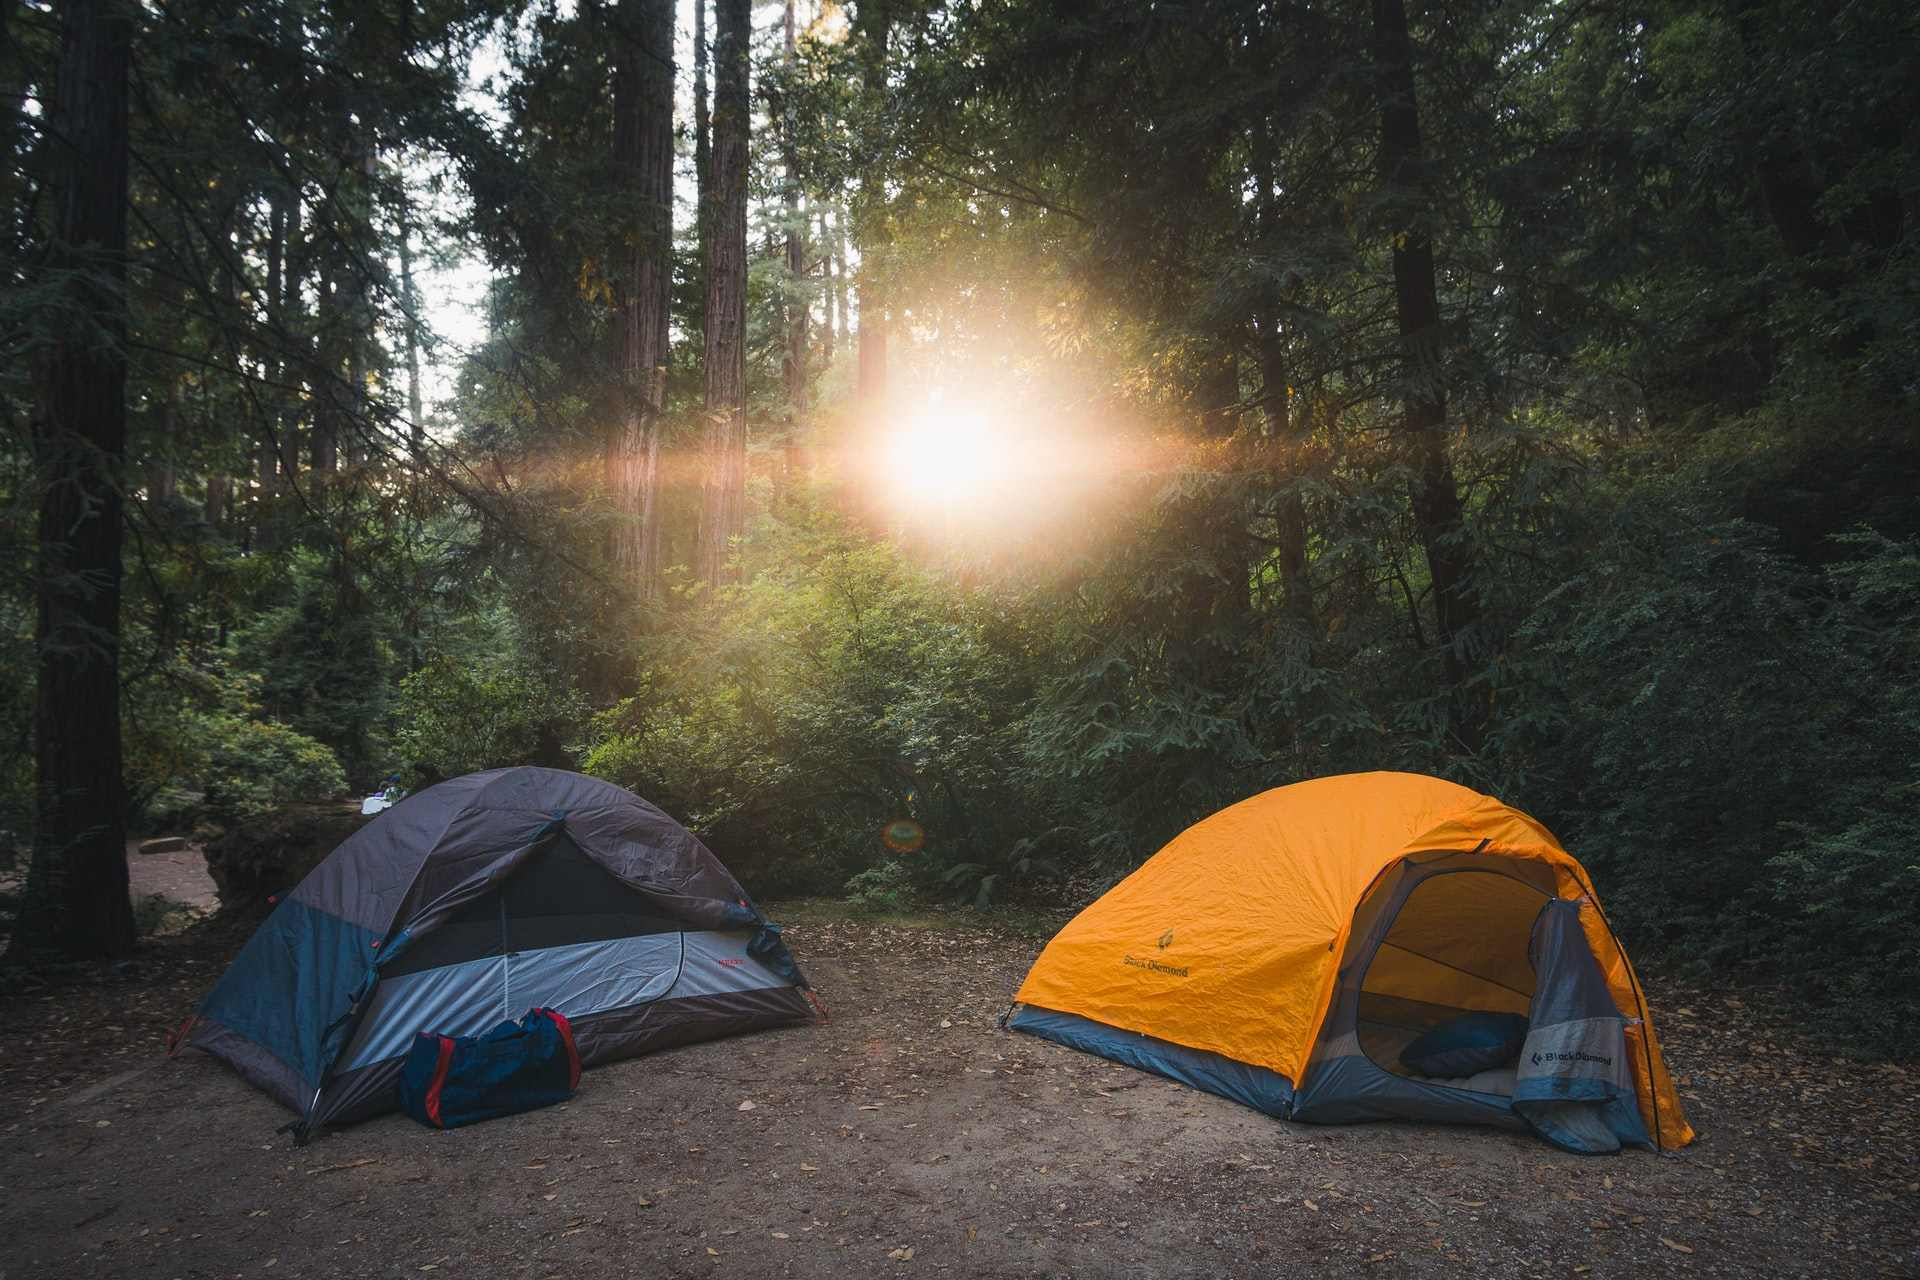 two-tents-in-forest-in-redwoods-california-eco-friendly-camping